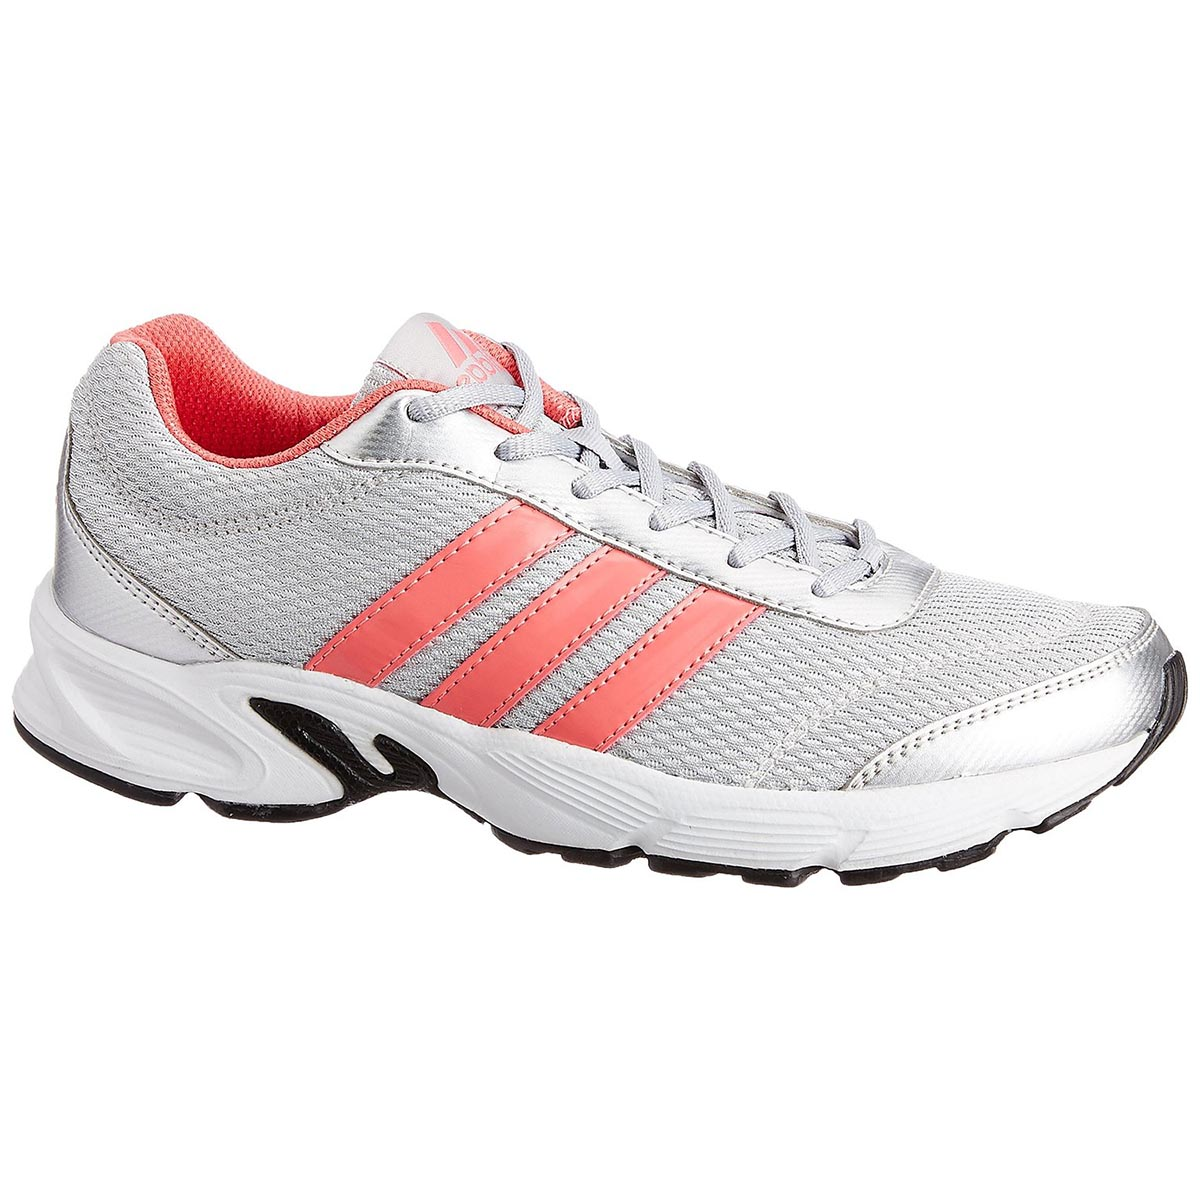 5f9329a7f23c Buy Adidas Phantom 2.1 Women s Running Shoes Online India